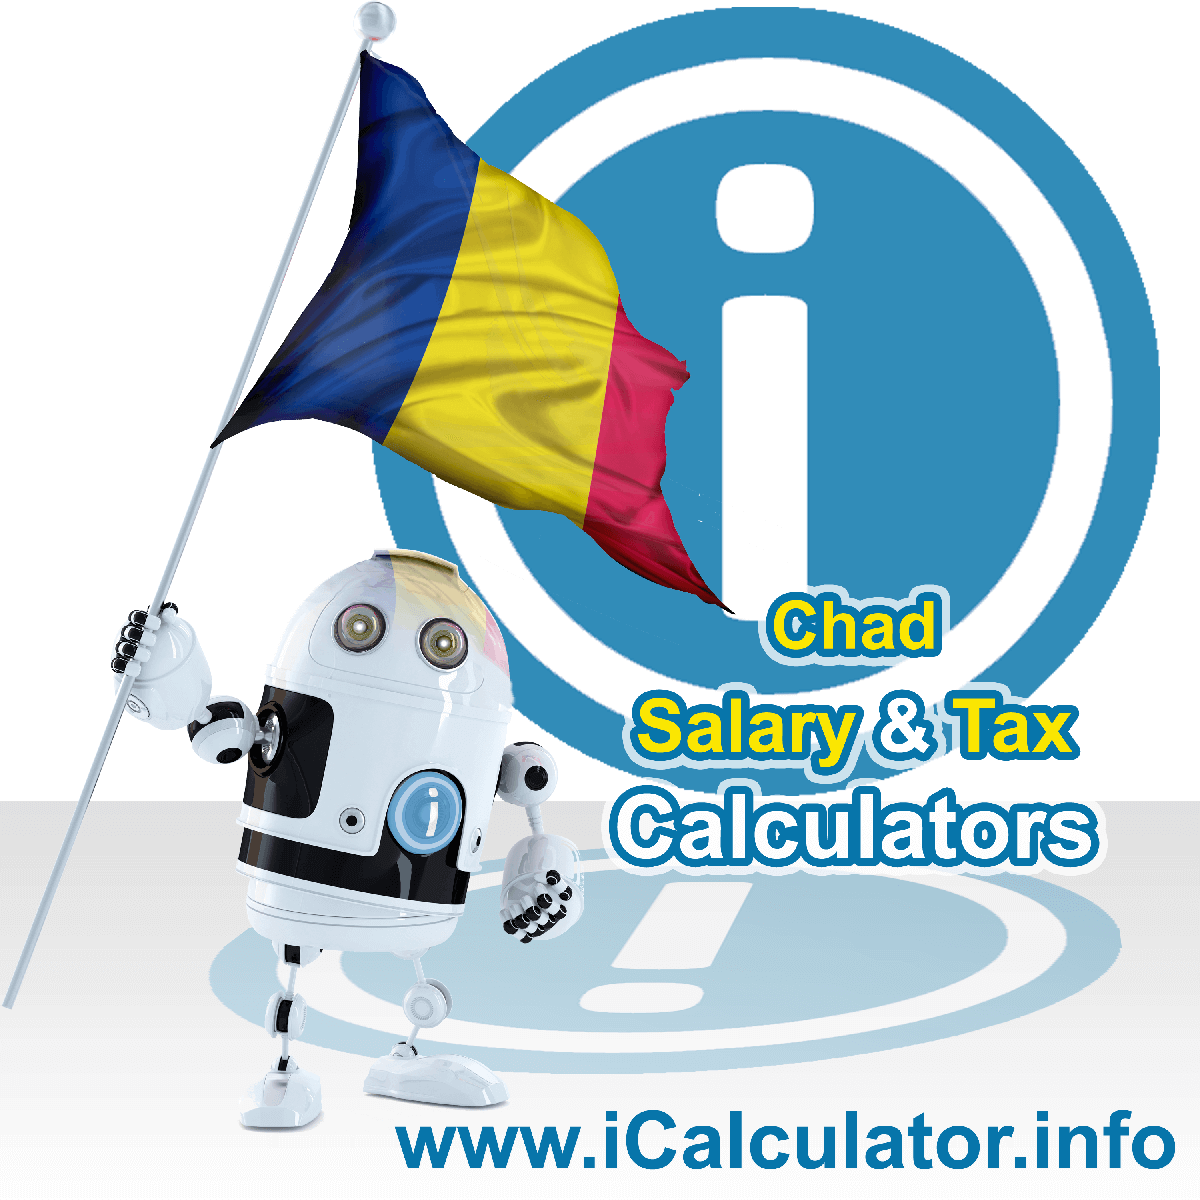 Chad Tax Calculator. This image shows the Chad flag and information relating to the tax formula for the Chad Salary Calculator